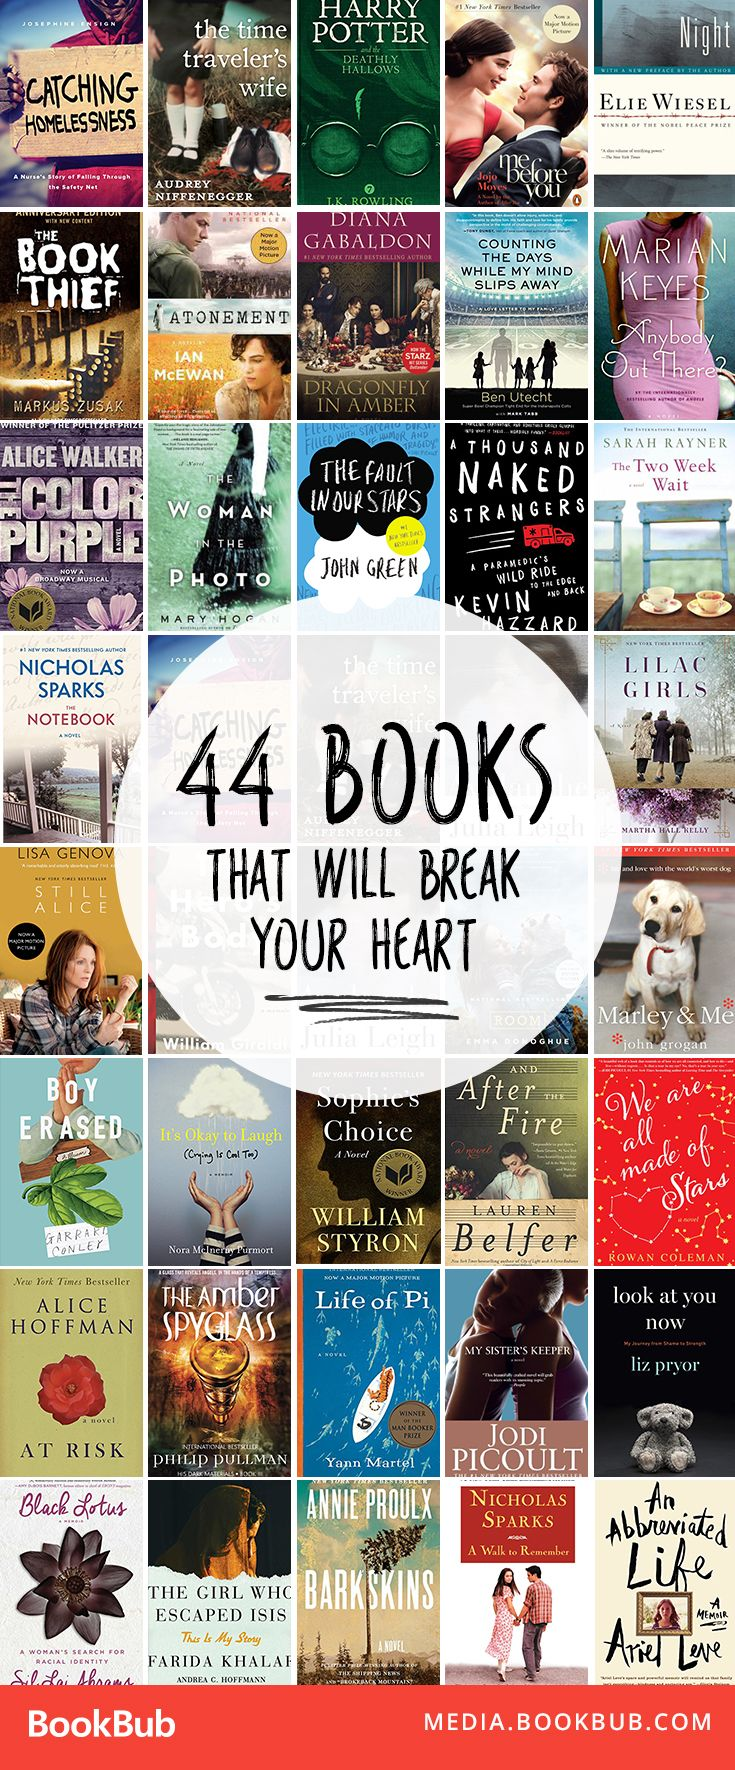 These emotional books will break your heart. Add these to your to-read list for those times you just need a good cry.